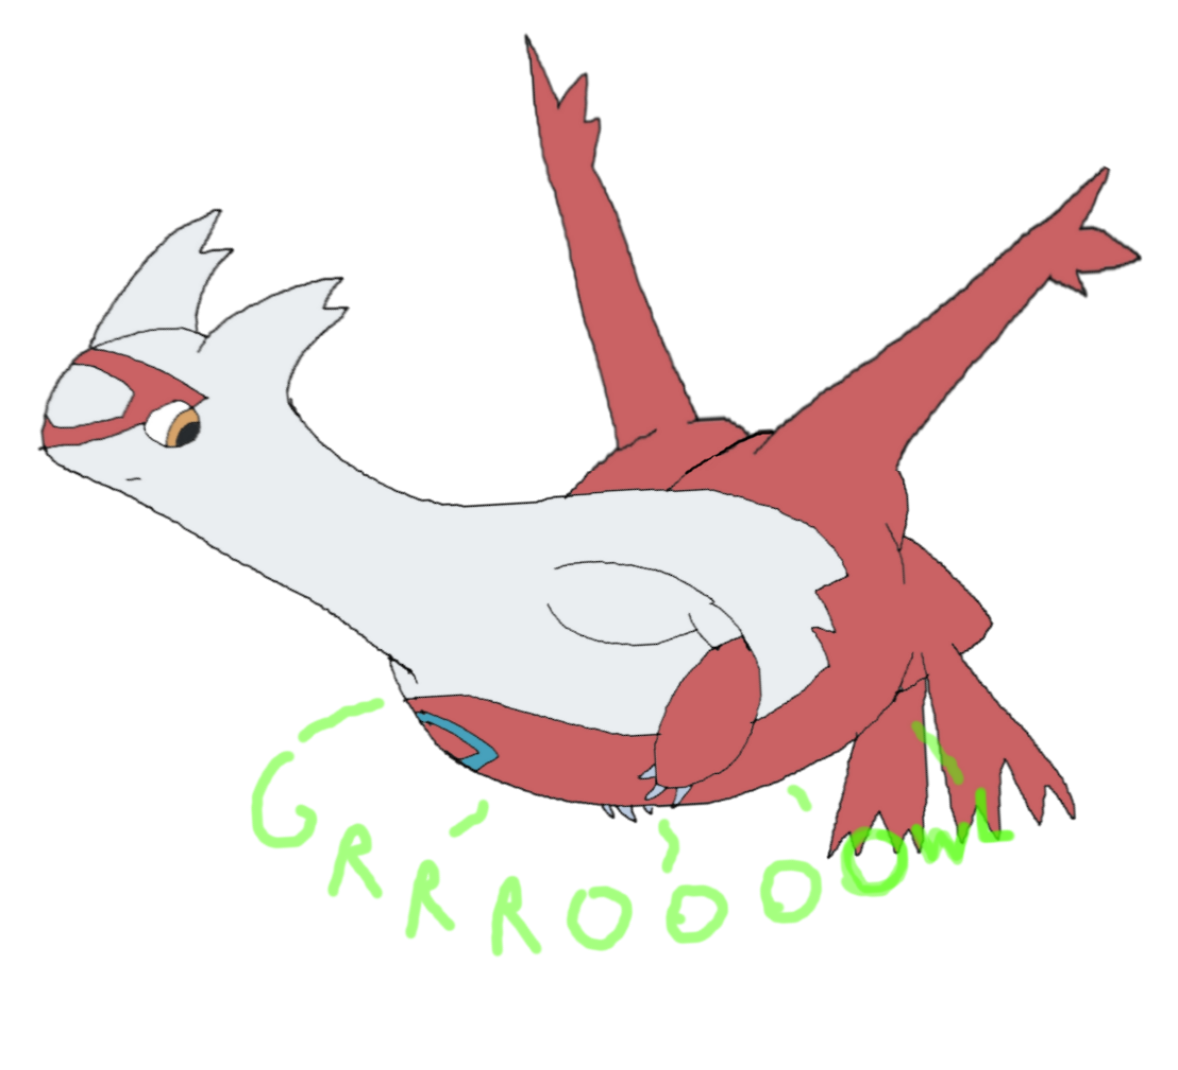 Hungry clipart stomach growl. Latias by iamthenightpotato fur